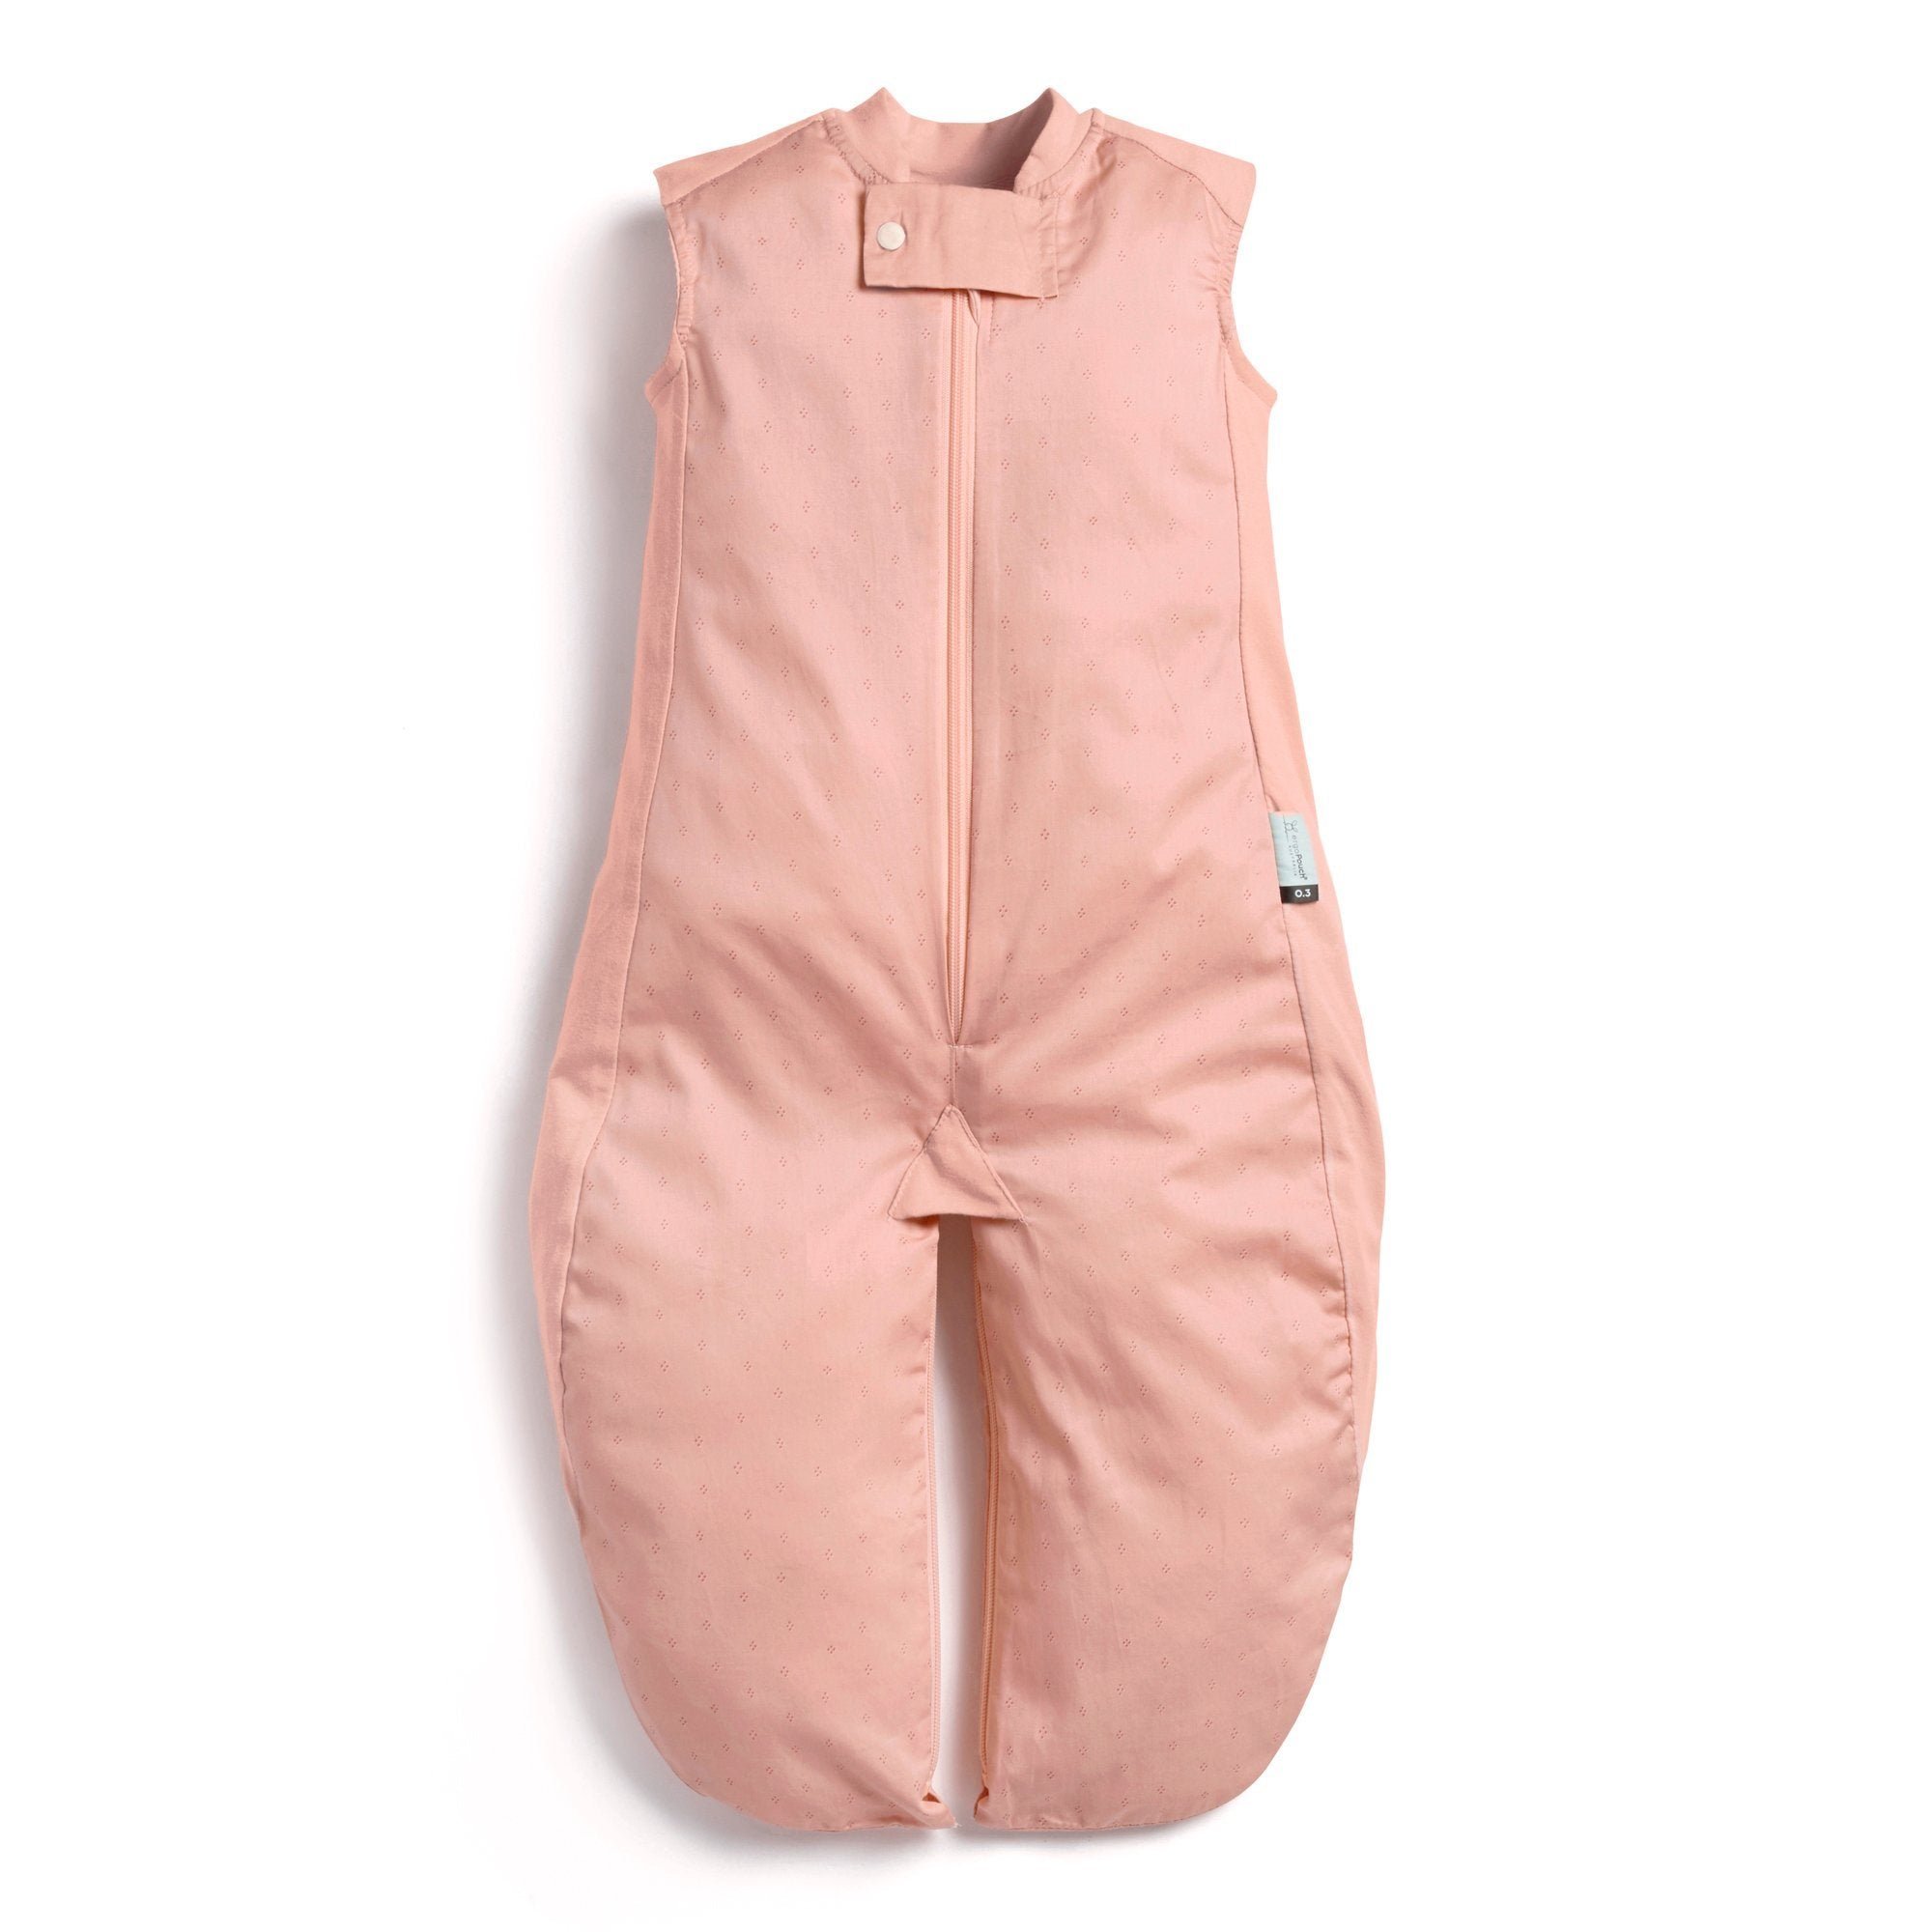 Sleep Suit Bag 0.3 tog (Berries)